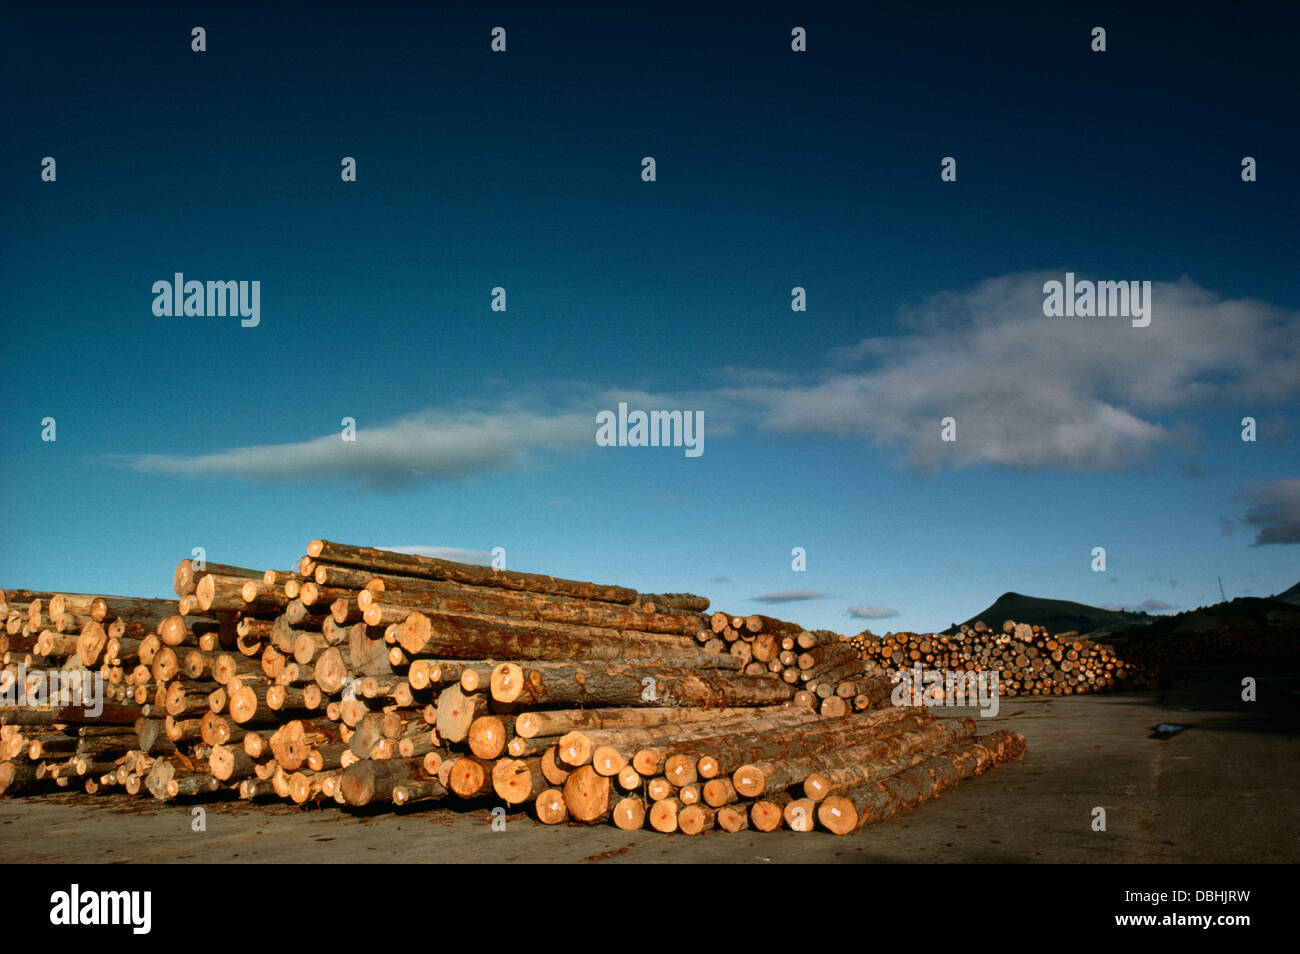 Picton New Zealand Picton Wood Exports Stacks Of Timber Logs - Stock Image